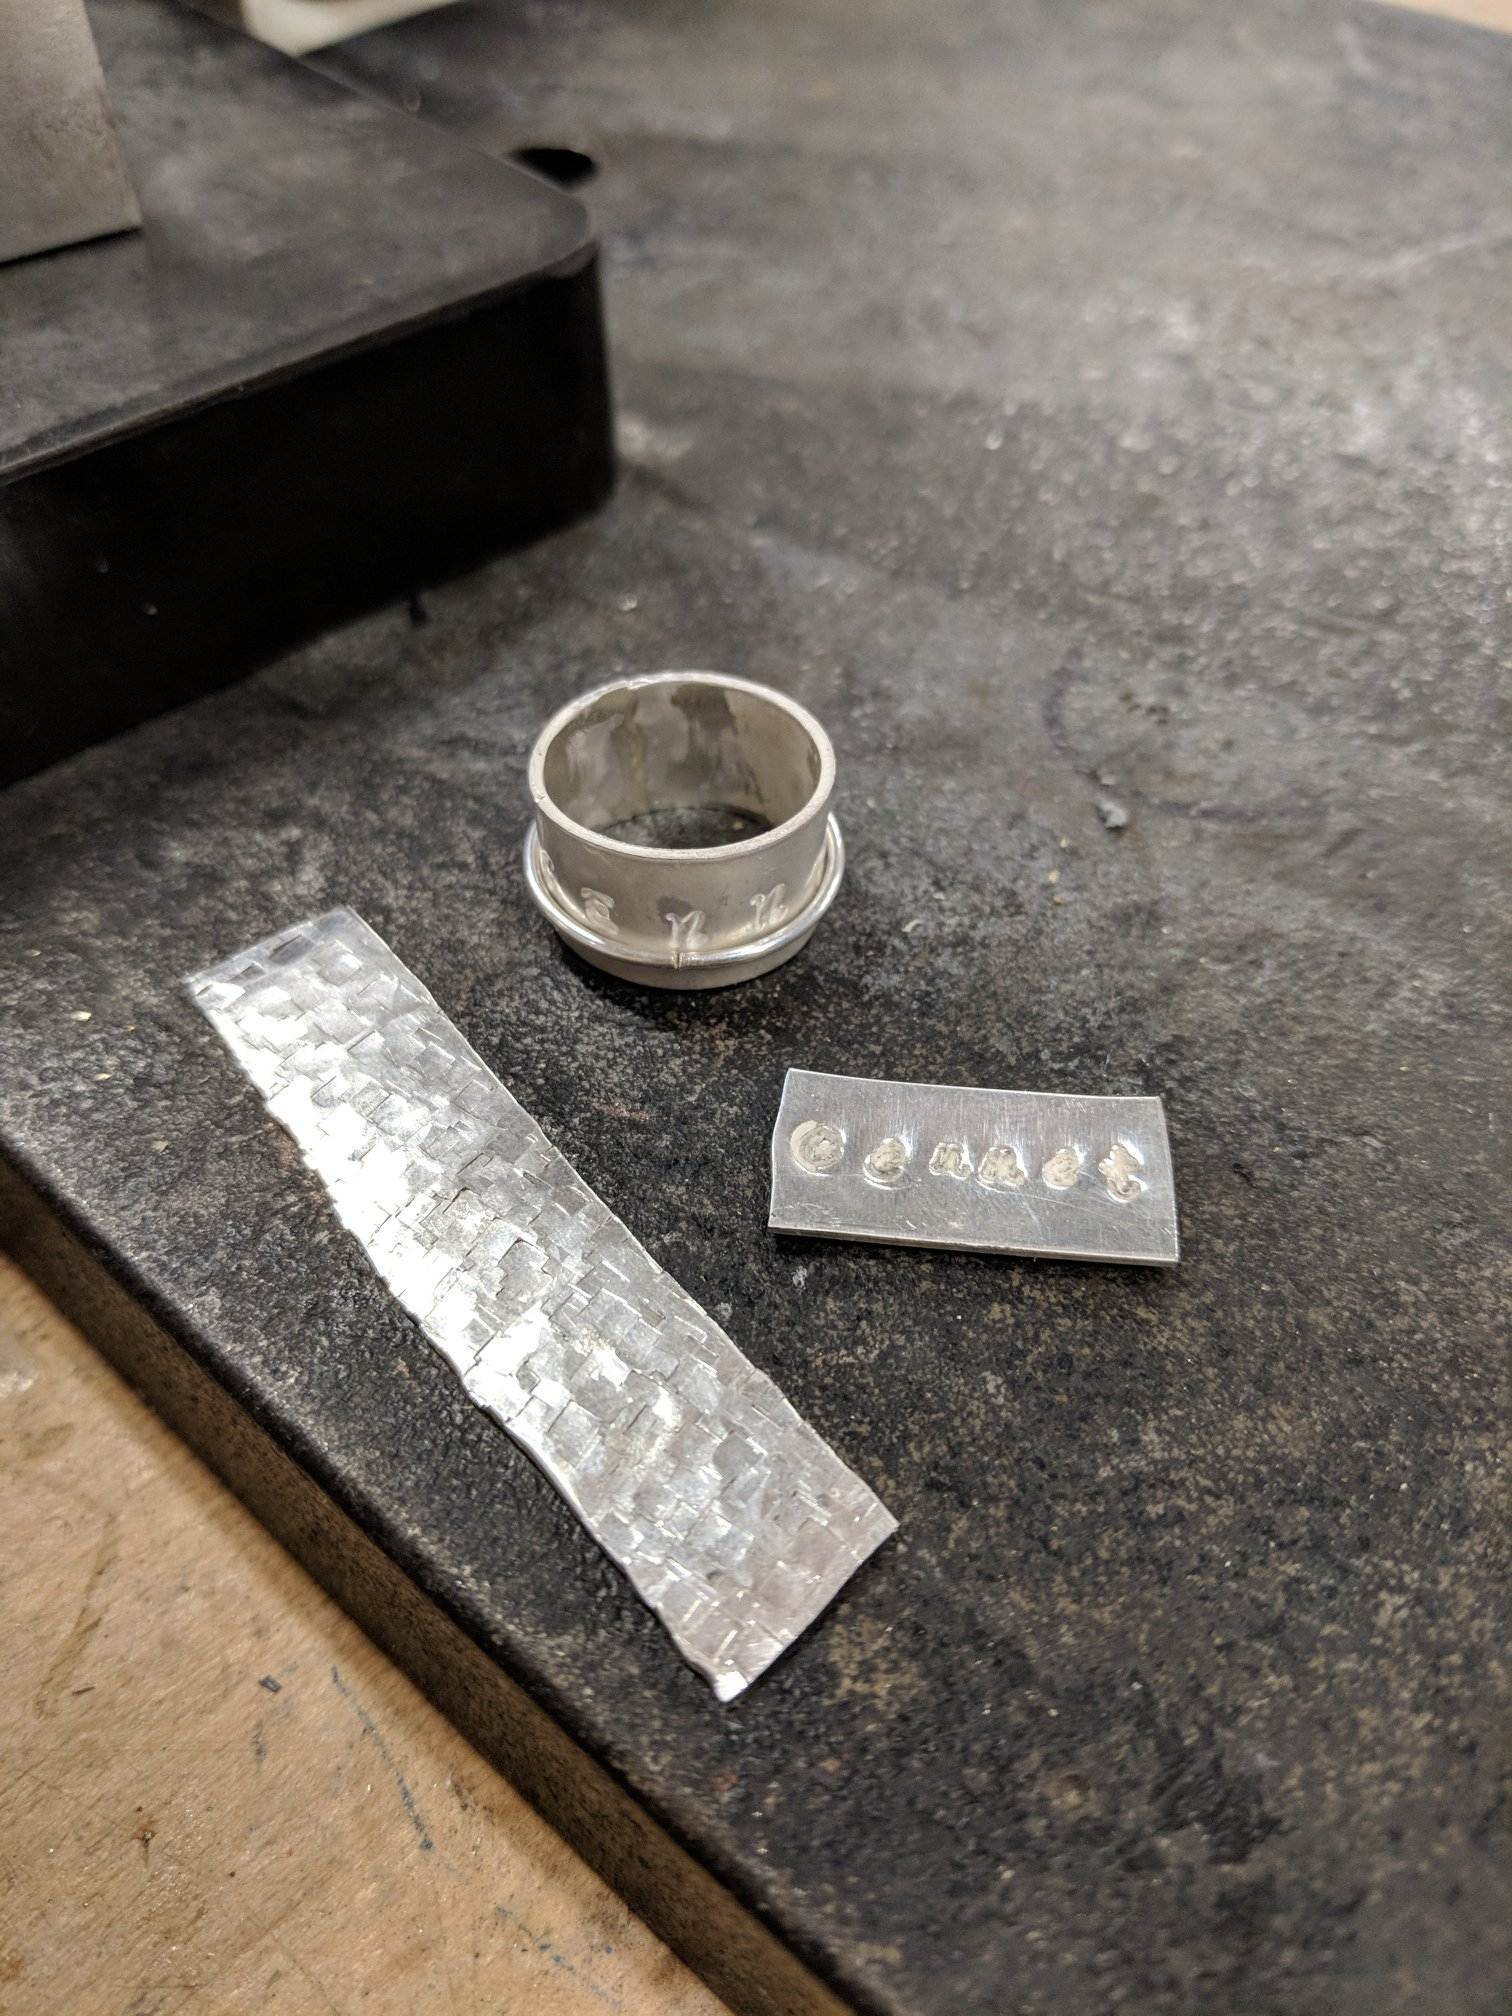 Silver ring and metal strips